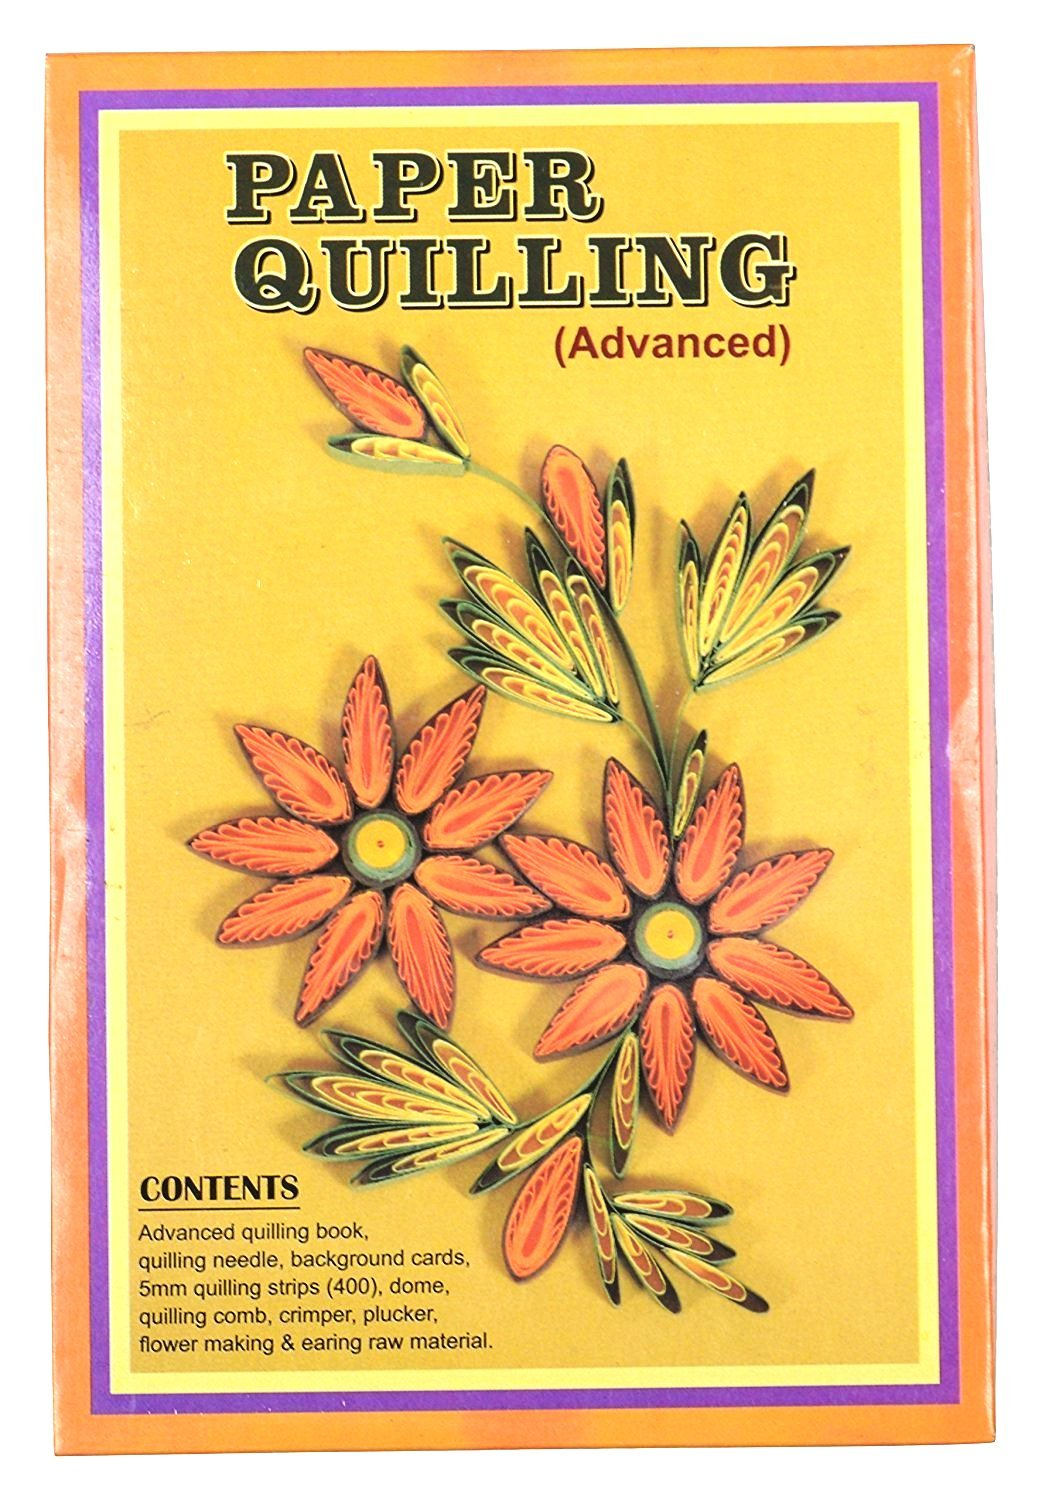 Buy oytra paper quilling advanced kit with needle background cards buy oytra paper quilling advanced kit with needle background cards 5mm quiling strips 400 dome comb crimper plucker flower making and earing raw mightylinksfo